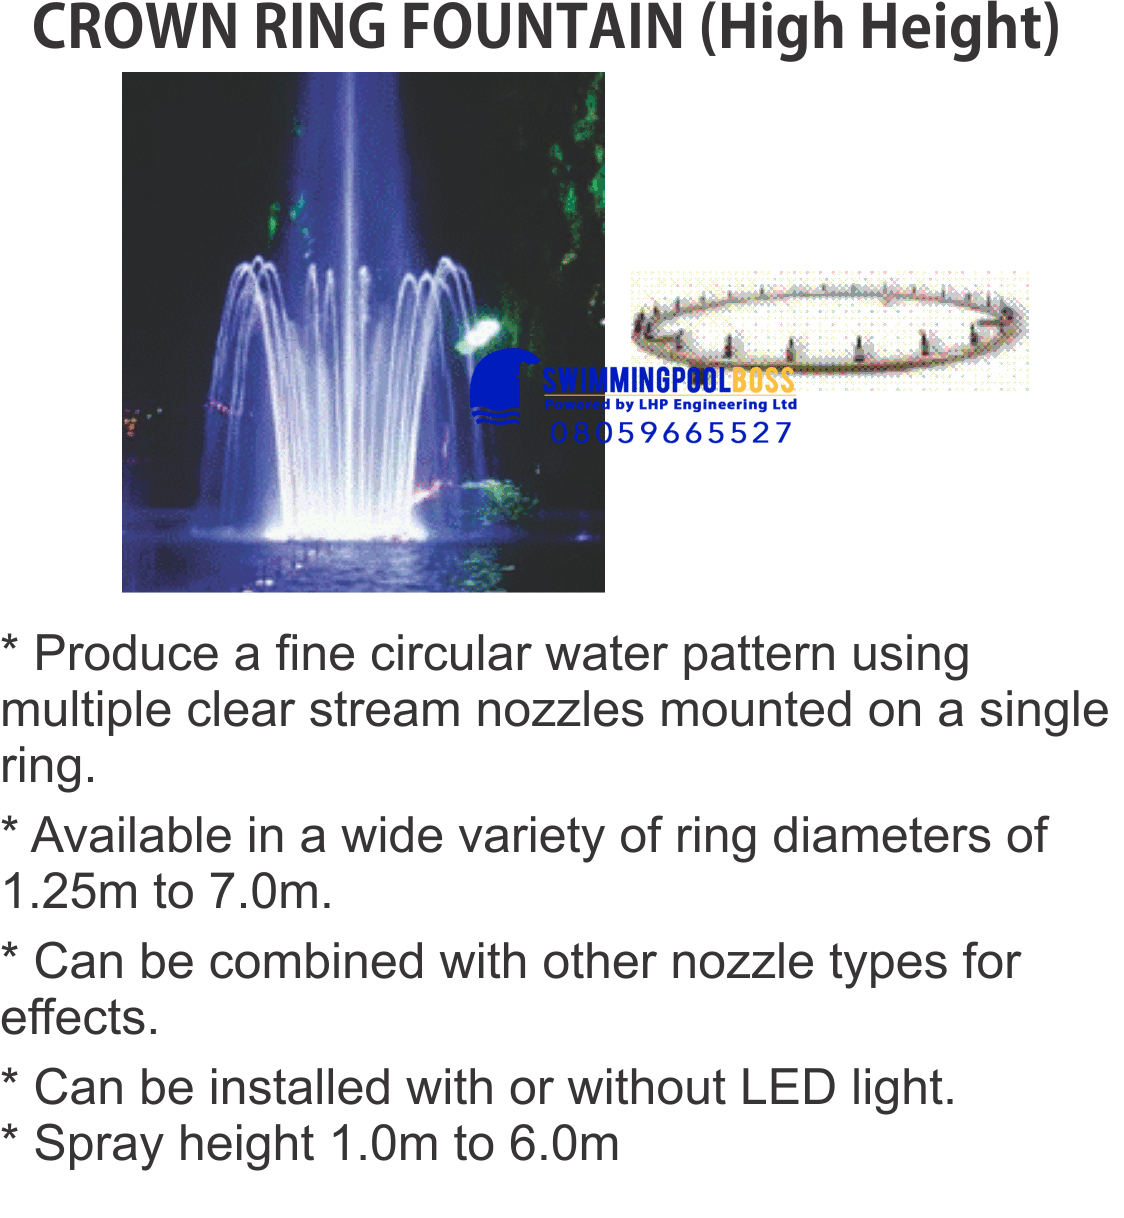 CROWN RING JET FOUNTAINS